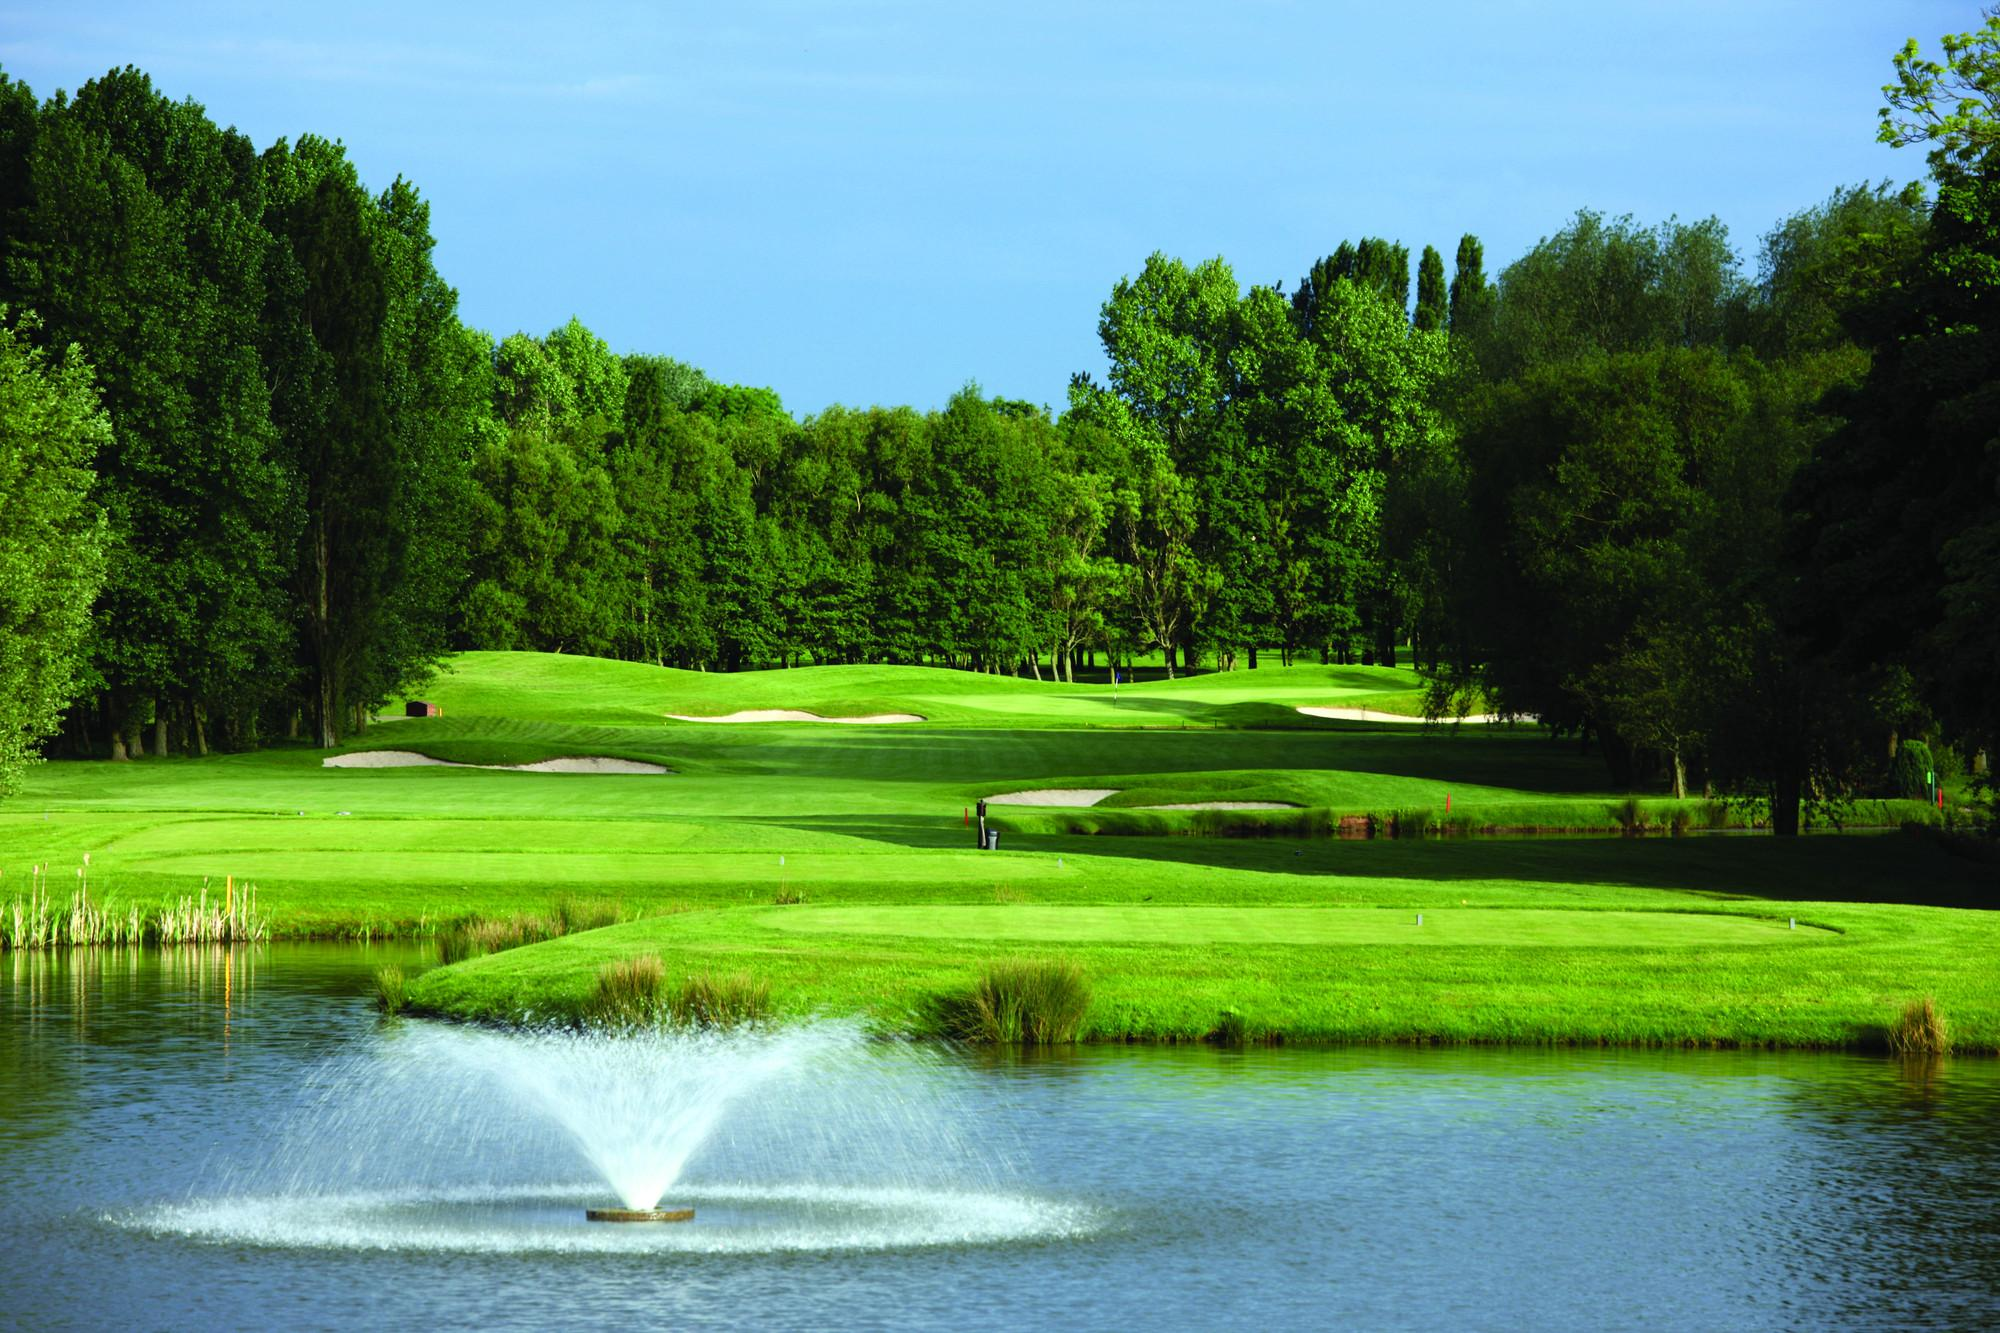 The Belfry Golf boasts some of the most popular golf course within West Midlands